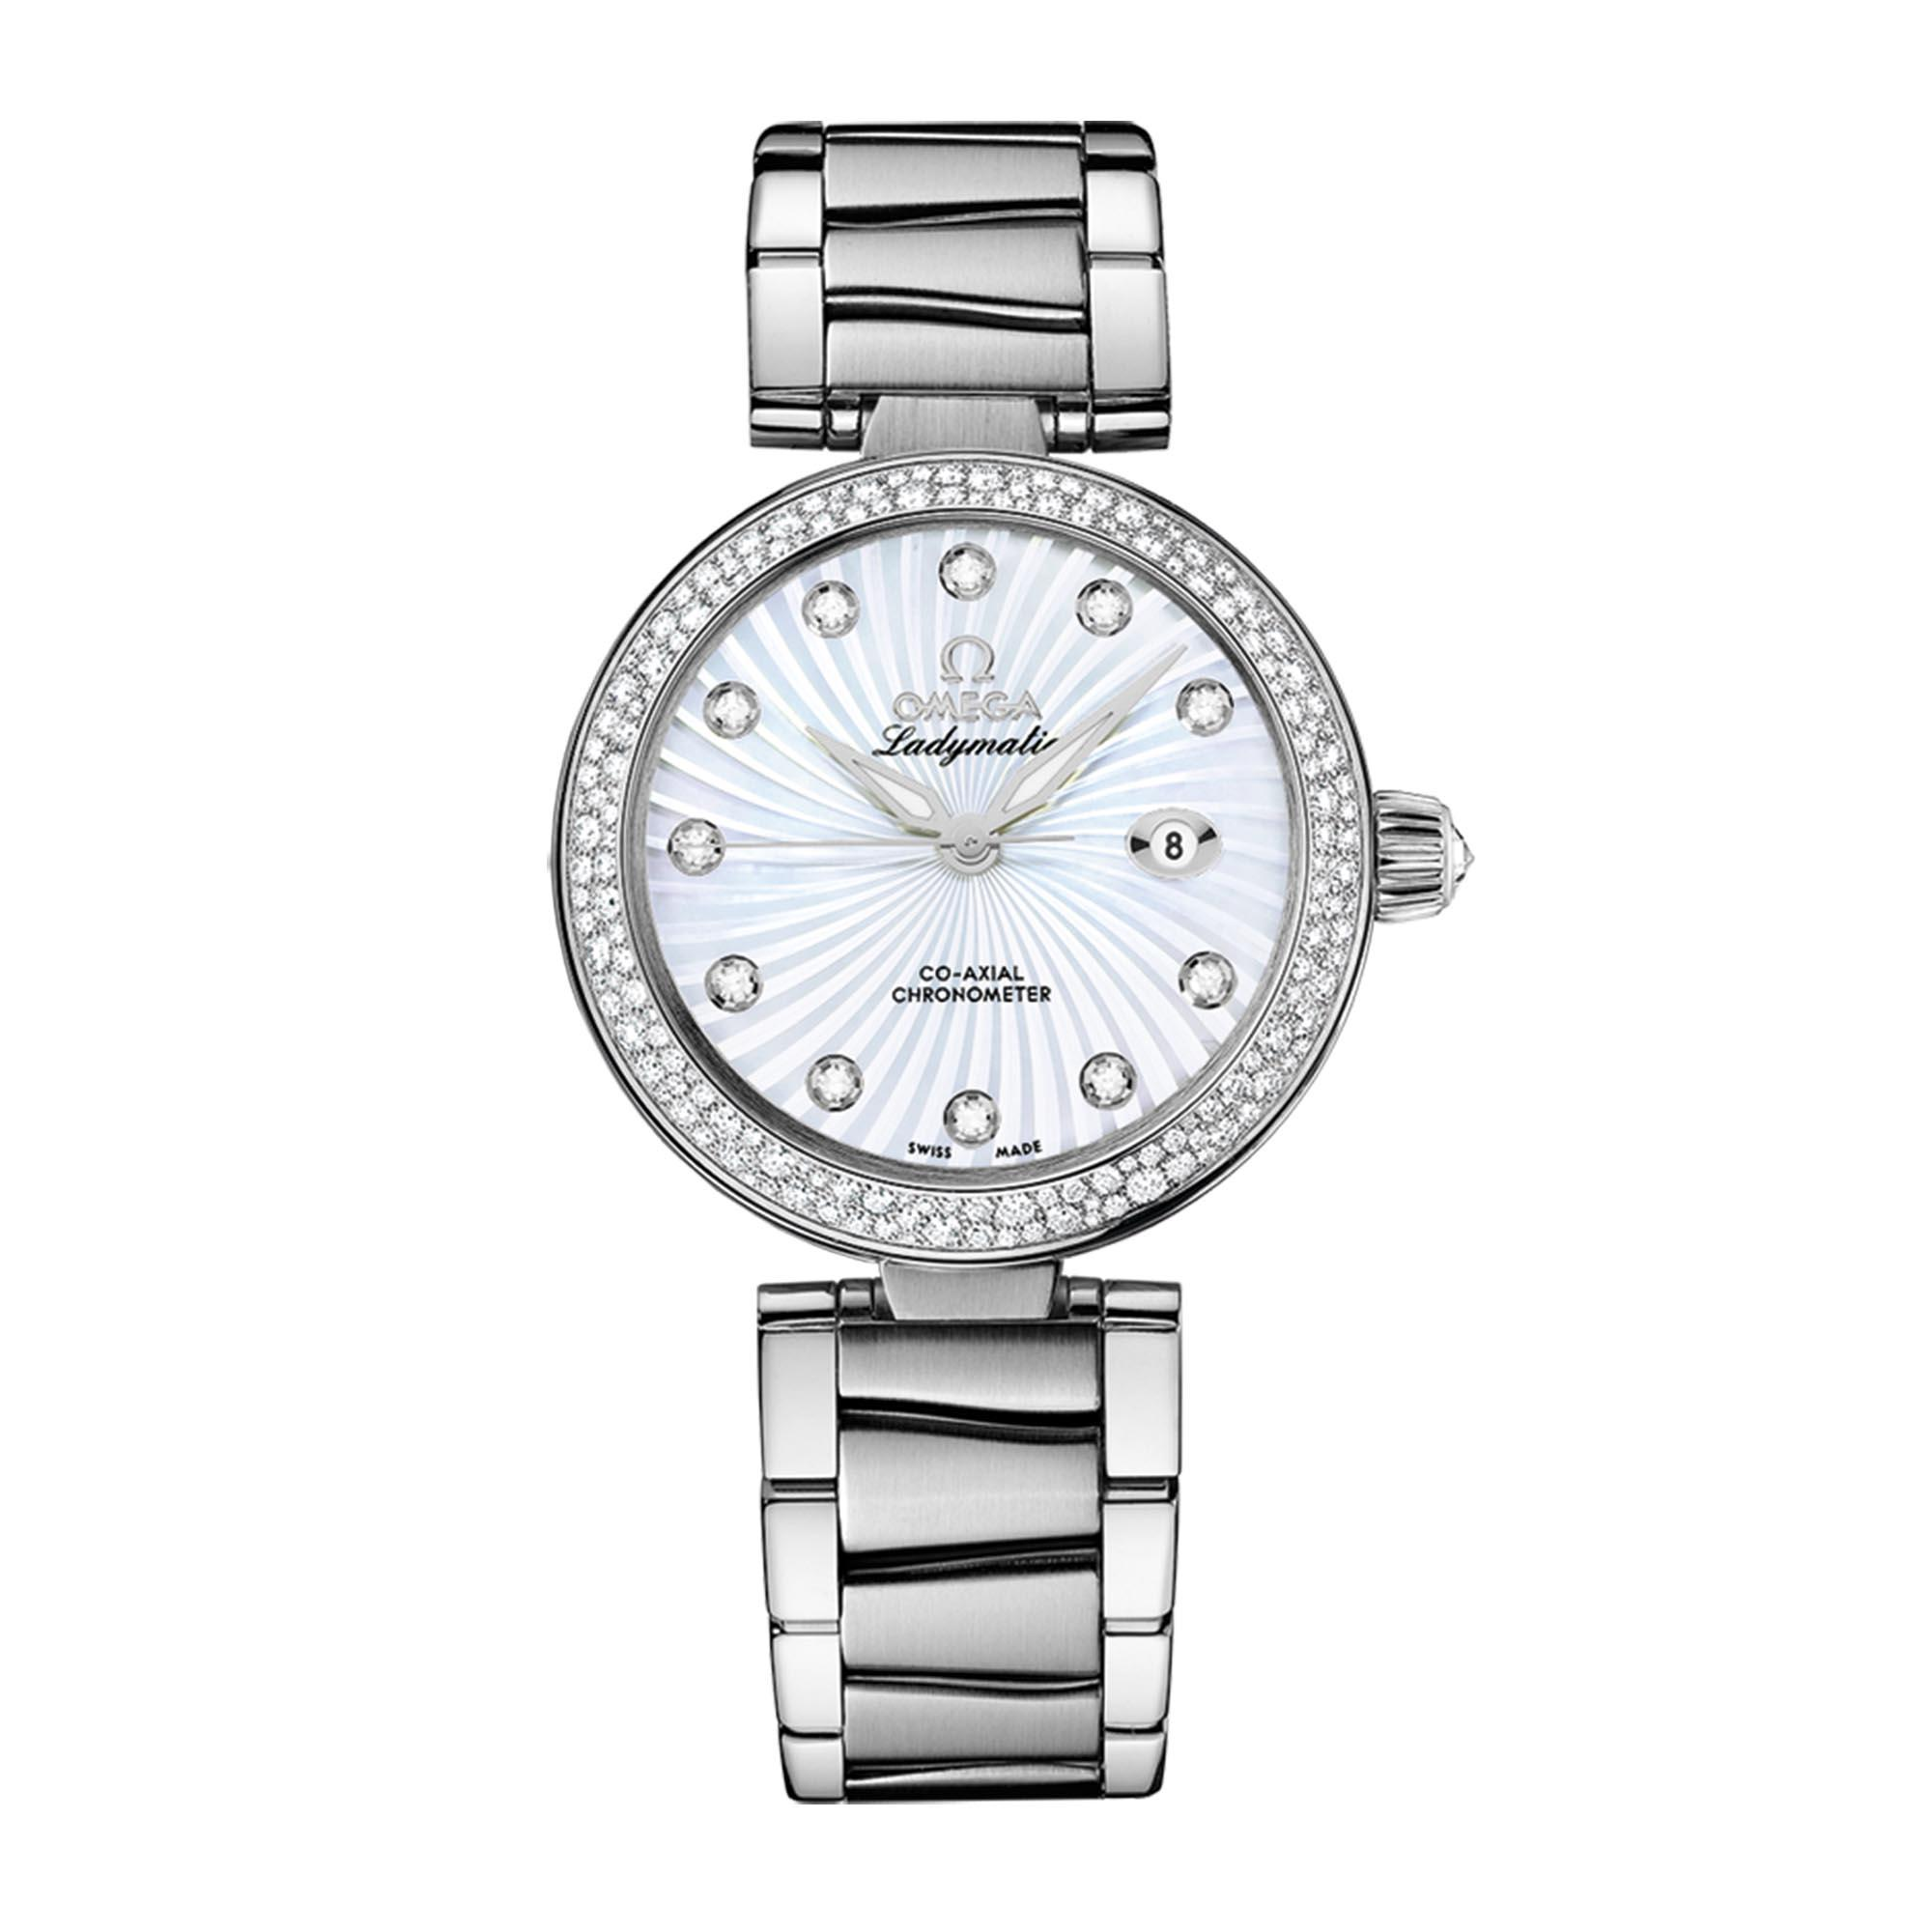 Omega - Ladymatic Co-Axial 34mm